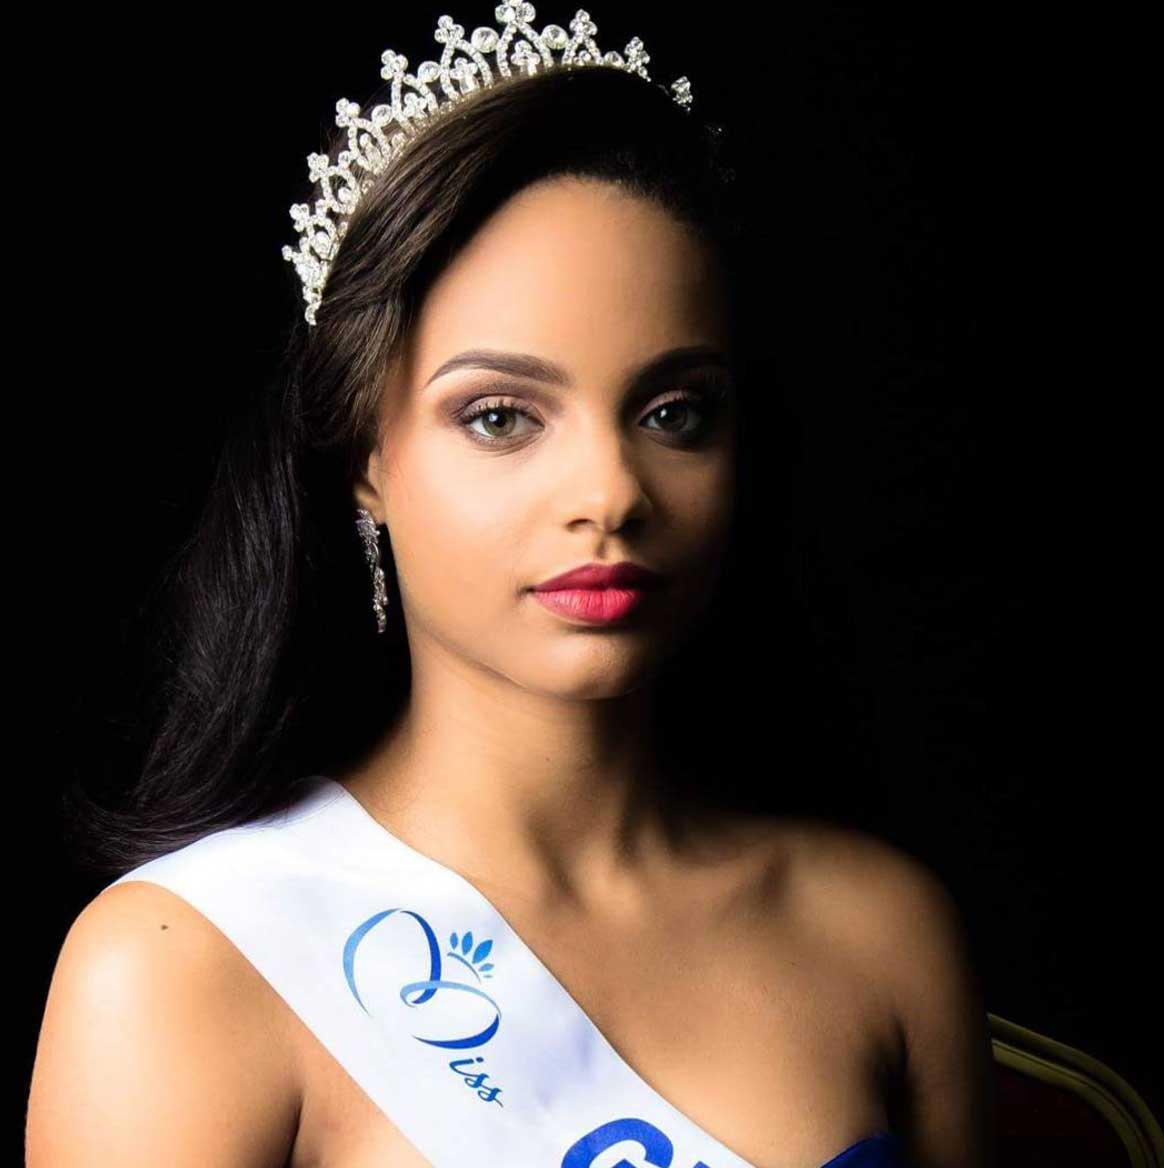 Alicia aylies miss guyane est miss france 2017 photos bondamanjak - Miss guyane alicia aylies ...